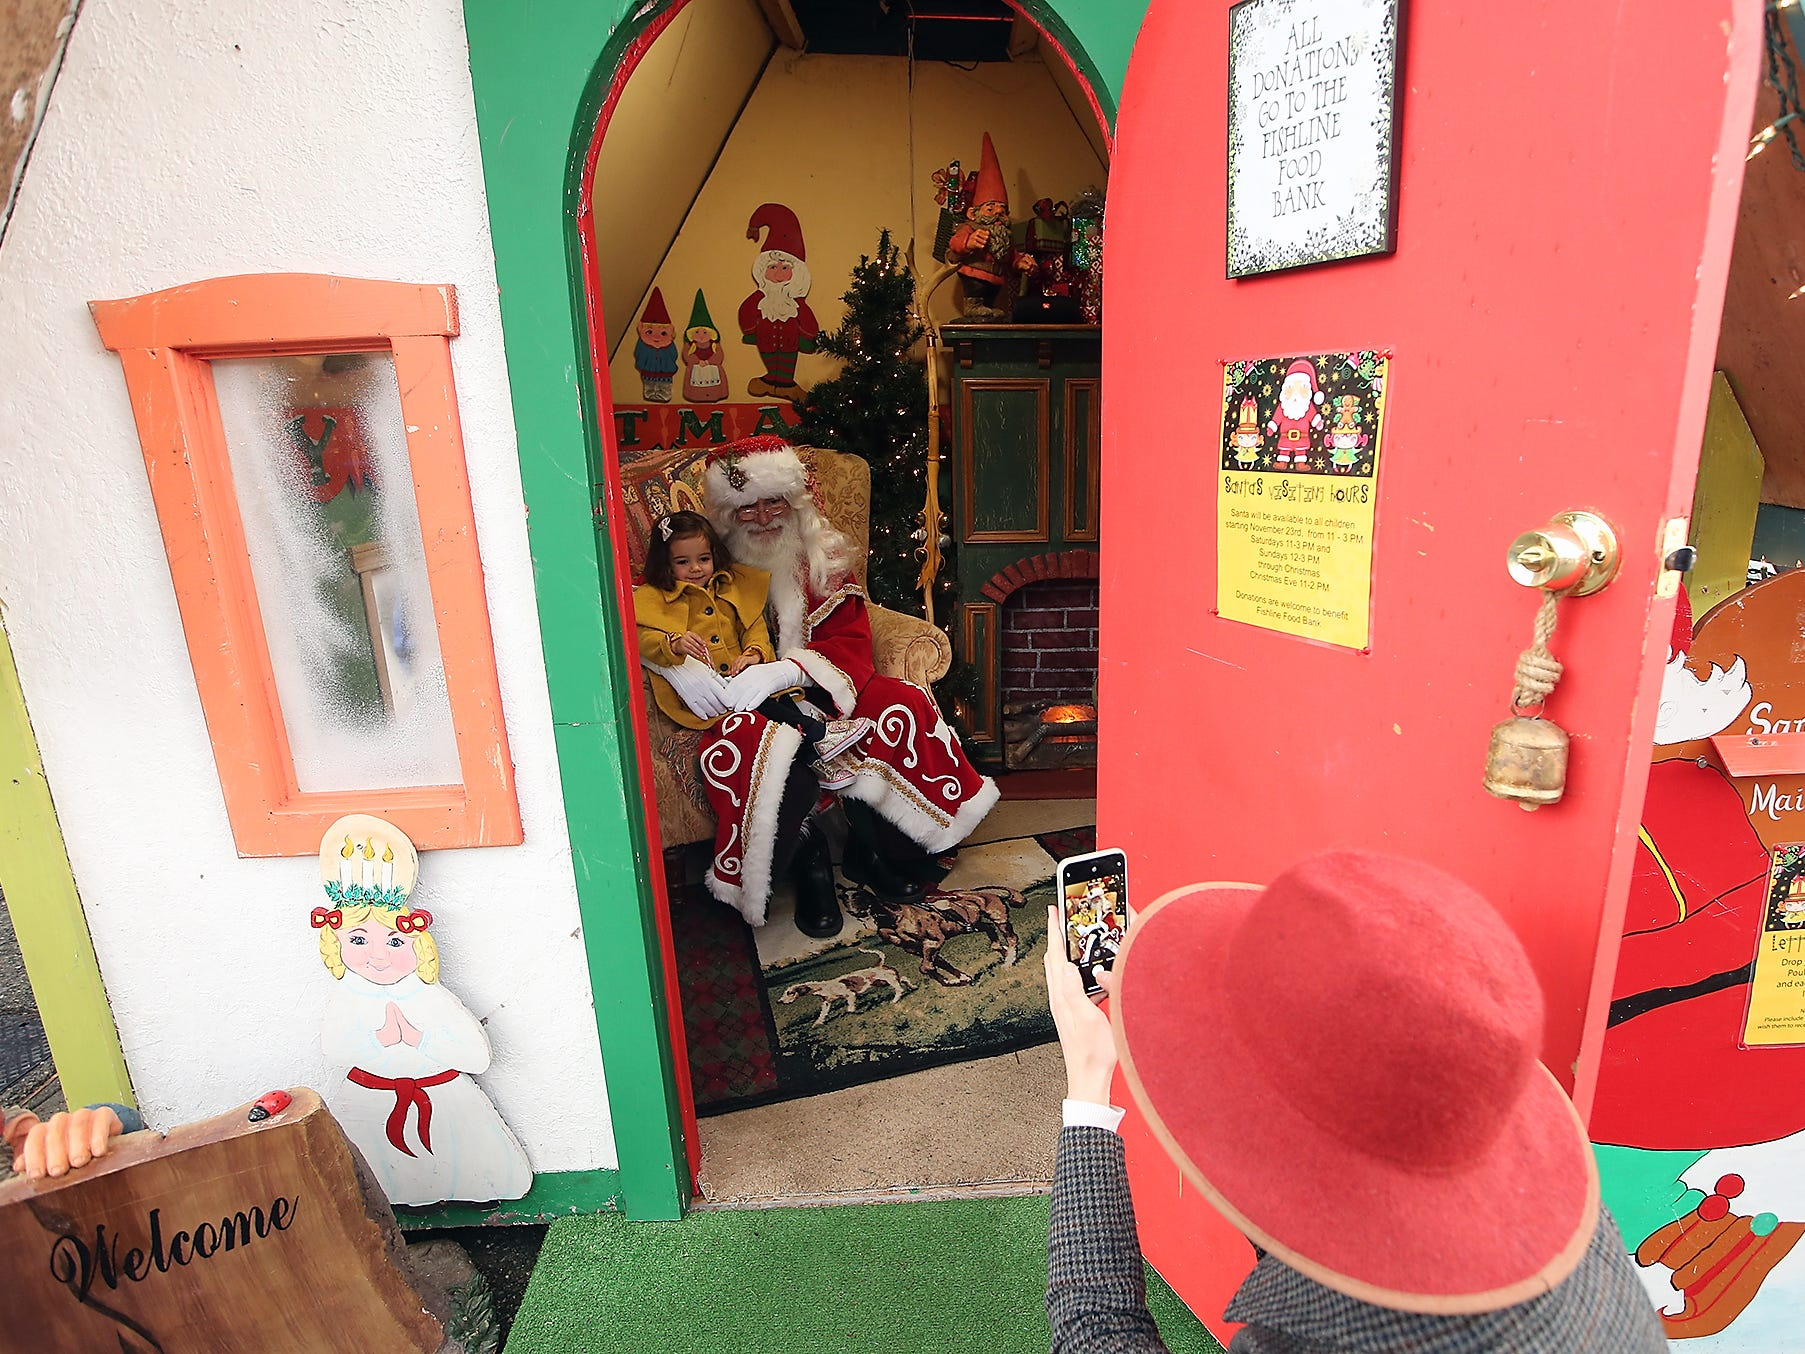 Nordic Father Christmas, played by Danny Fritts, holds Luna Junker, 3, of Bainbridge Island, on his lap while mom Hana snaps a photo on Friday, November 23, 2018.Those wishing to visit Nordic Father Christmas in his house can head to downtown Poulsbo 11 to 3 on Saturdays and 12 to 3 on Sundays and donations benefit Fishline.